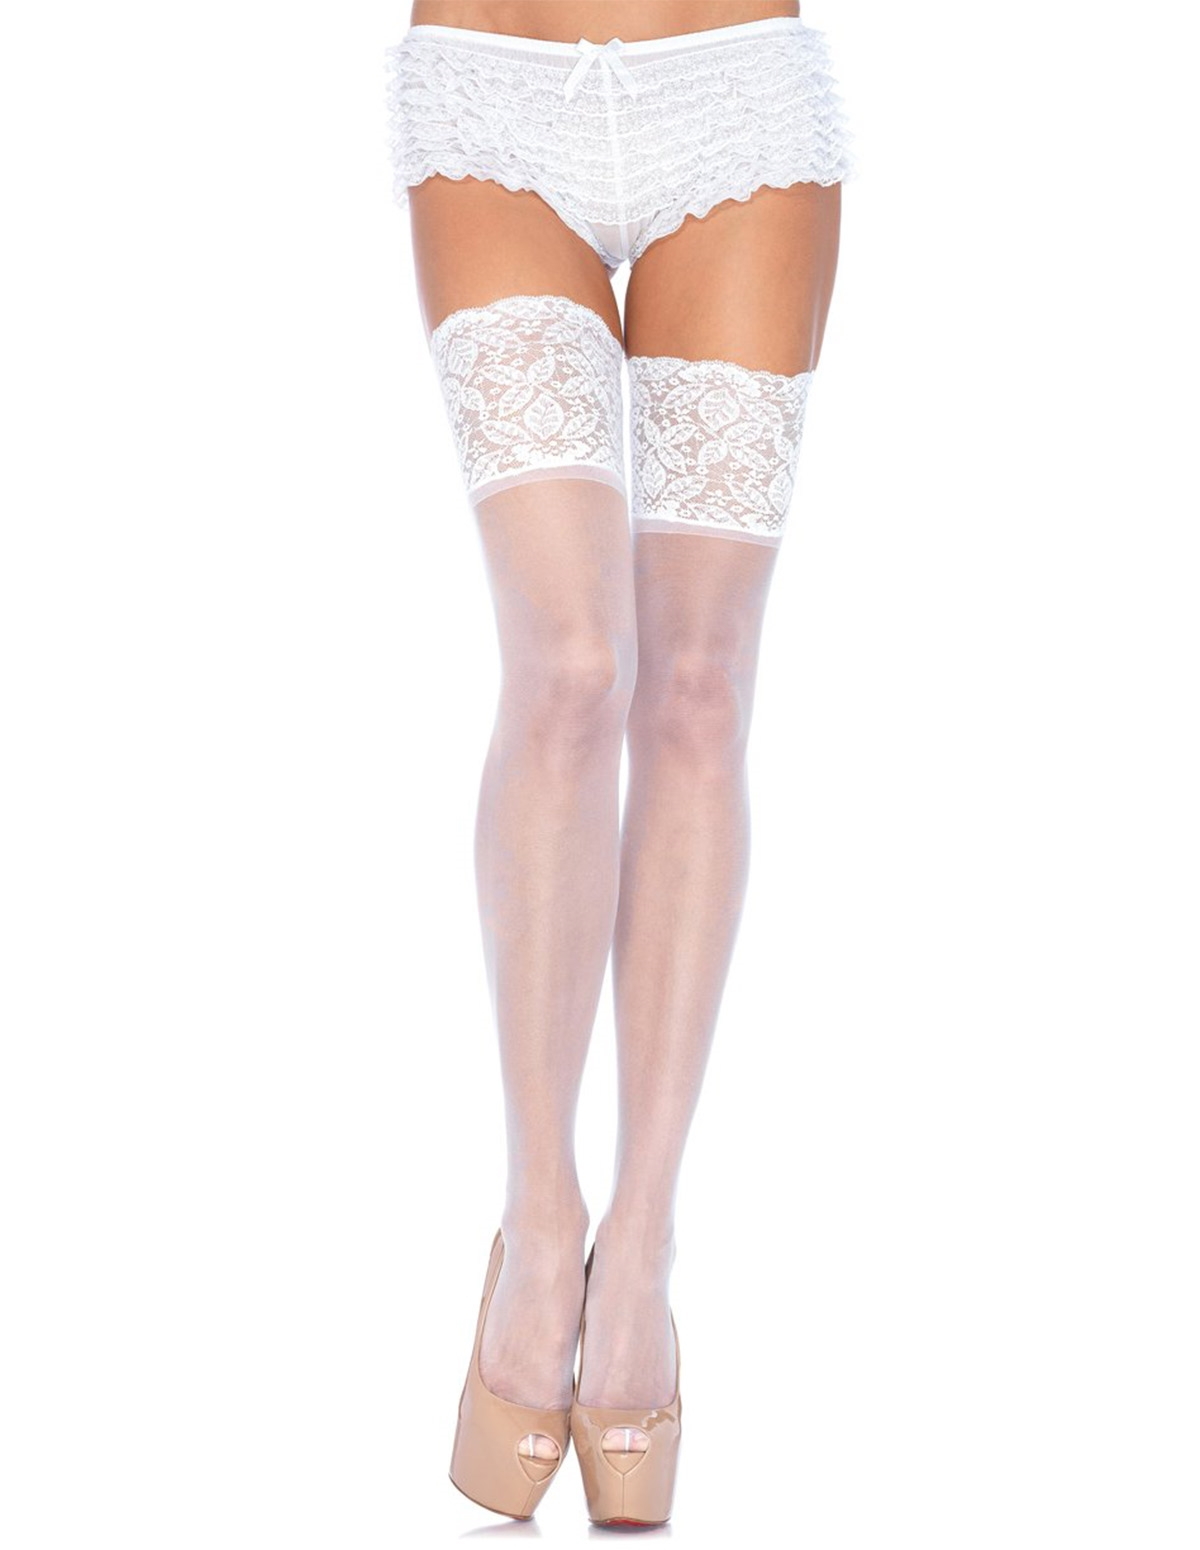 5 Inch Lace Top Thigh High - Plus